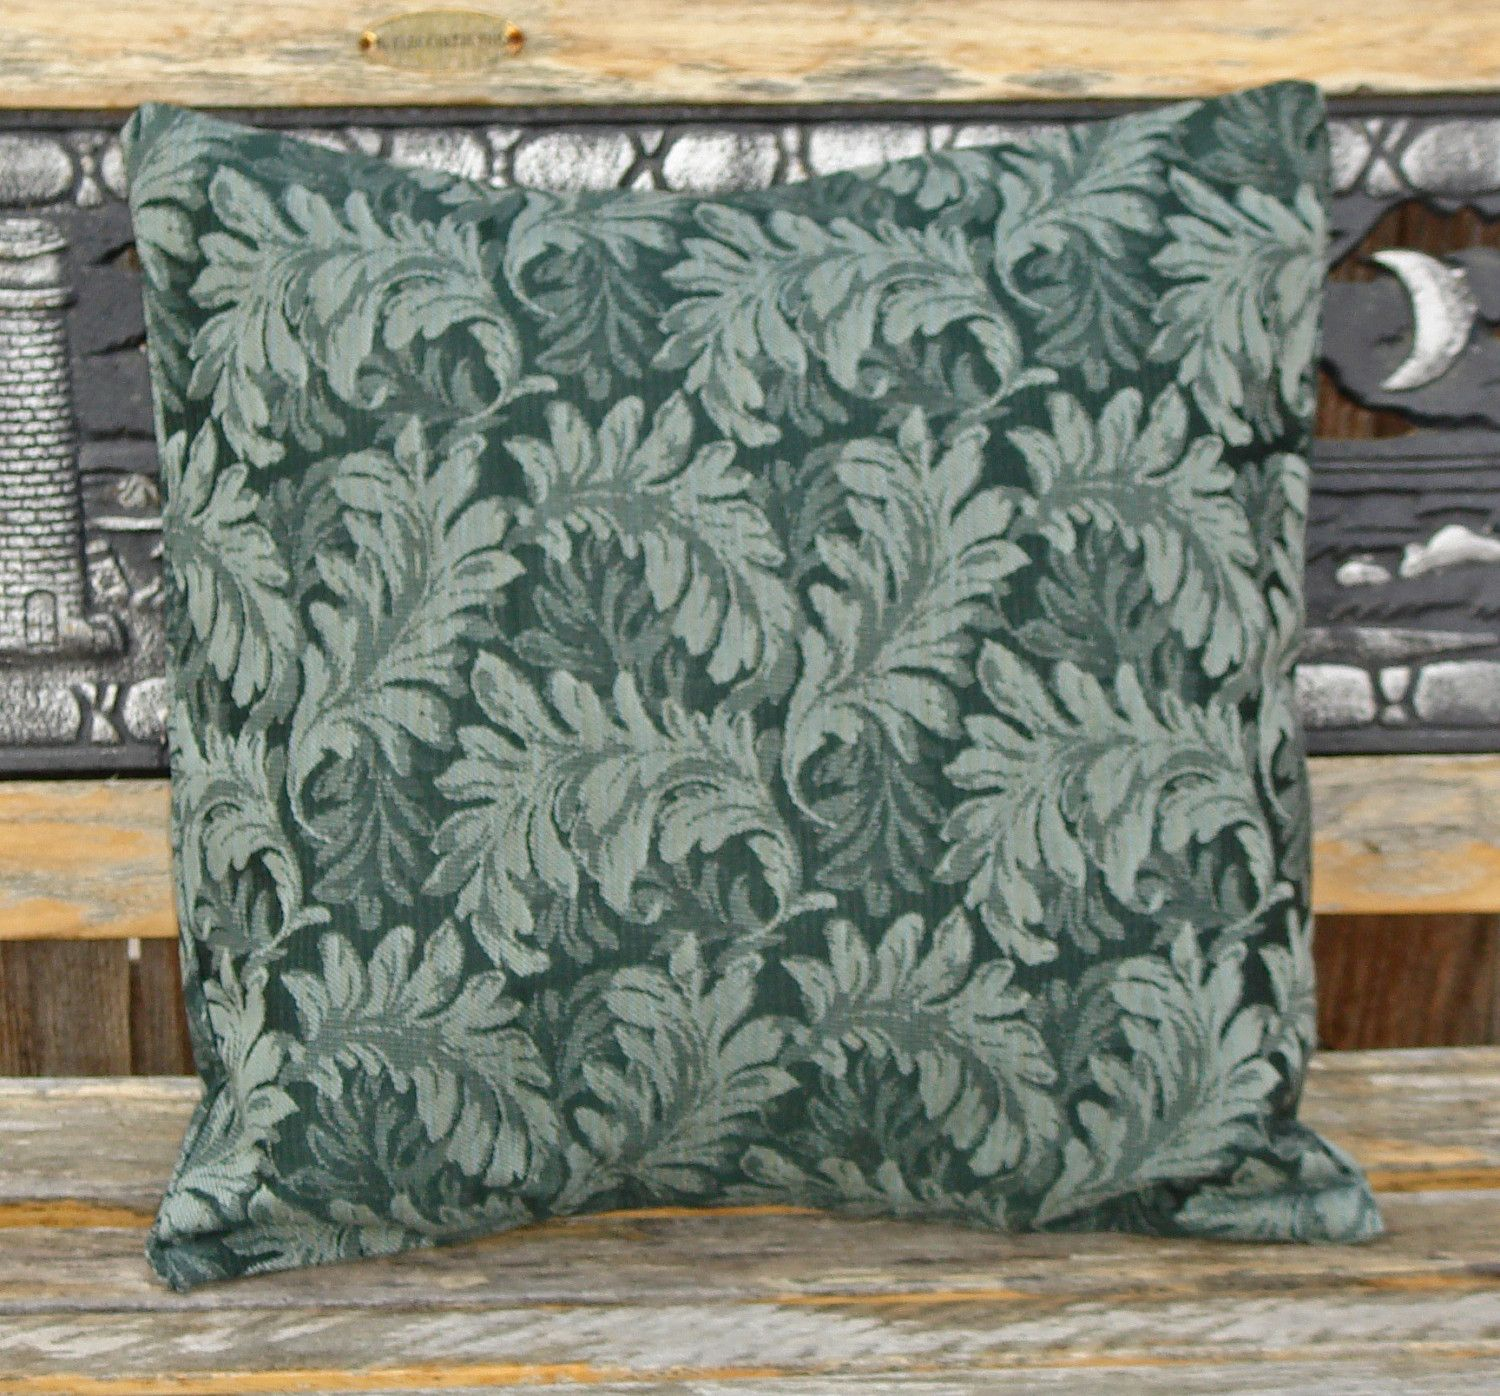 Throw pillows cover x sewn with large delicate leaf print in